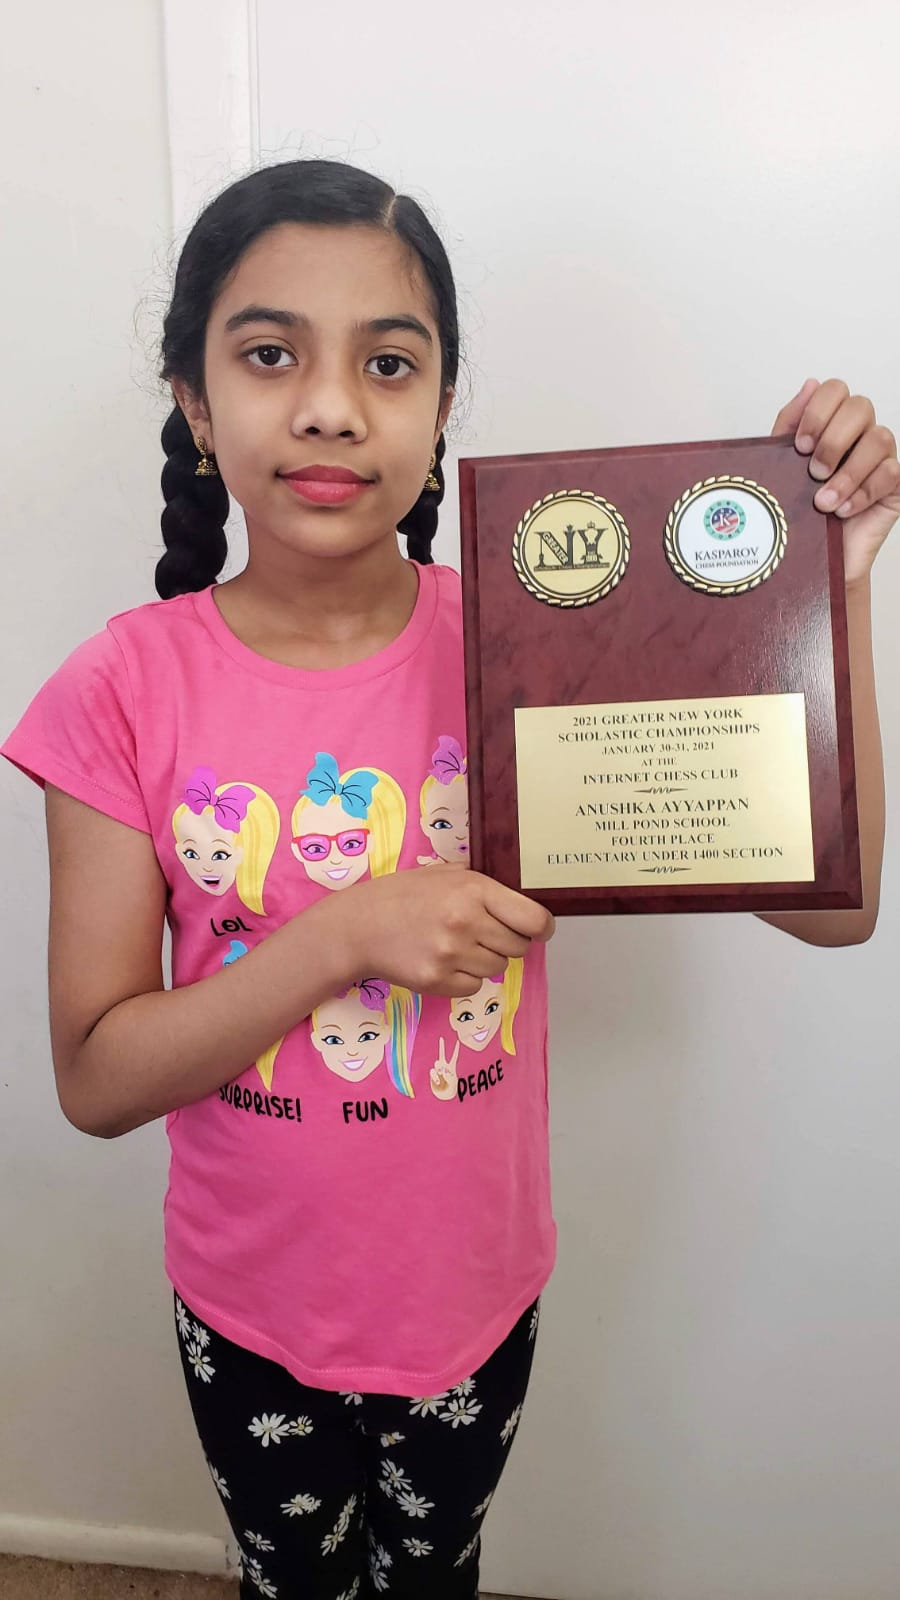 Anushka secured 4th place in 2021 Greater New York Scholastic U-1400